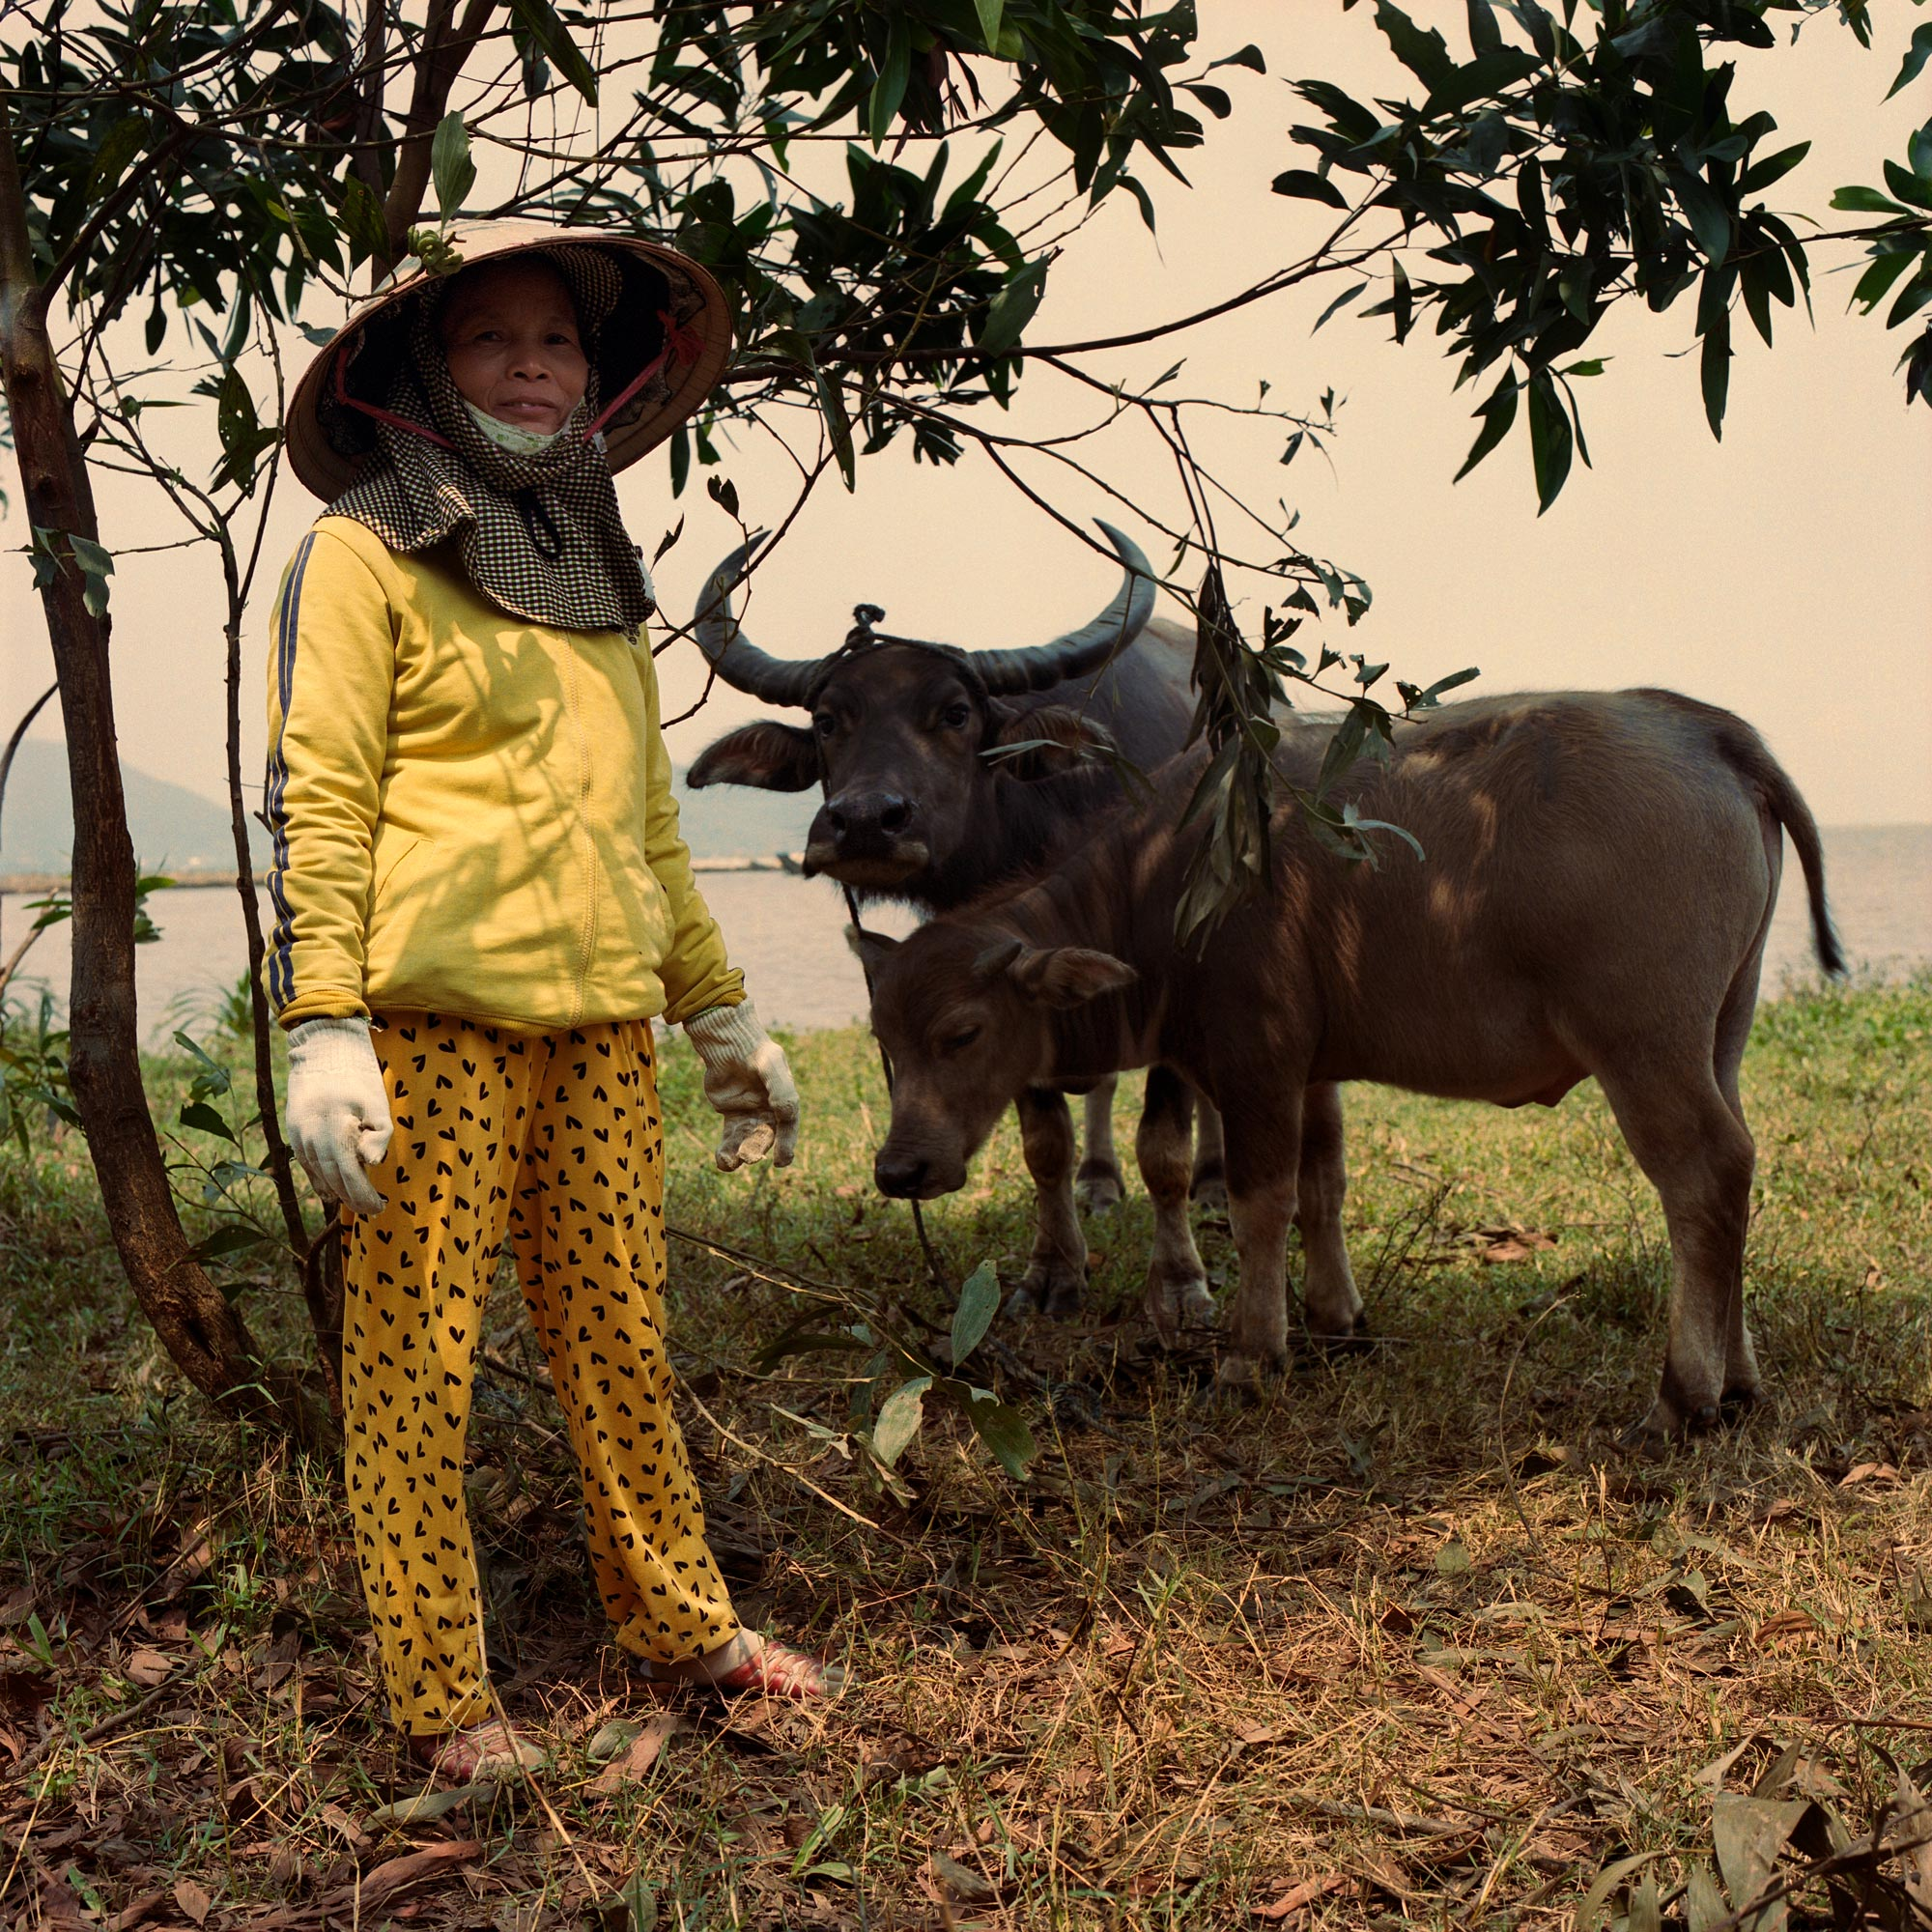 Woman Herding Water Buffalo in Hue Vietnam, Eastern Travels, photography by ioannis koussertari